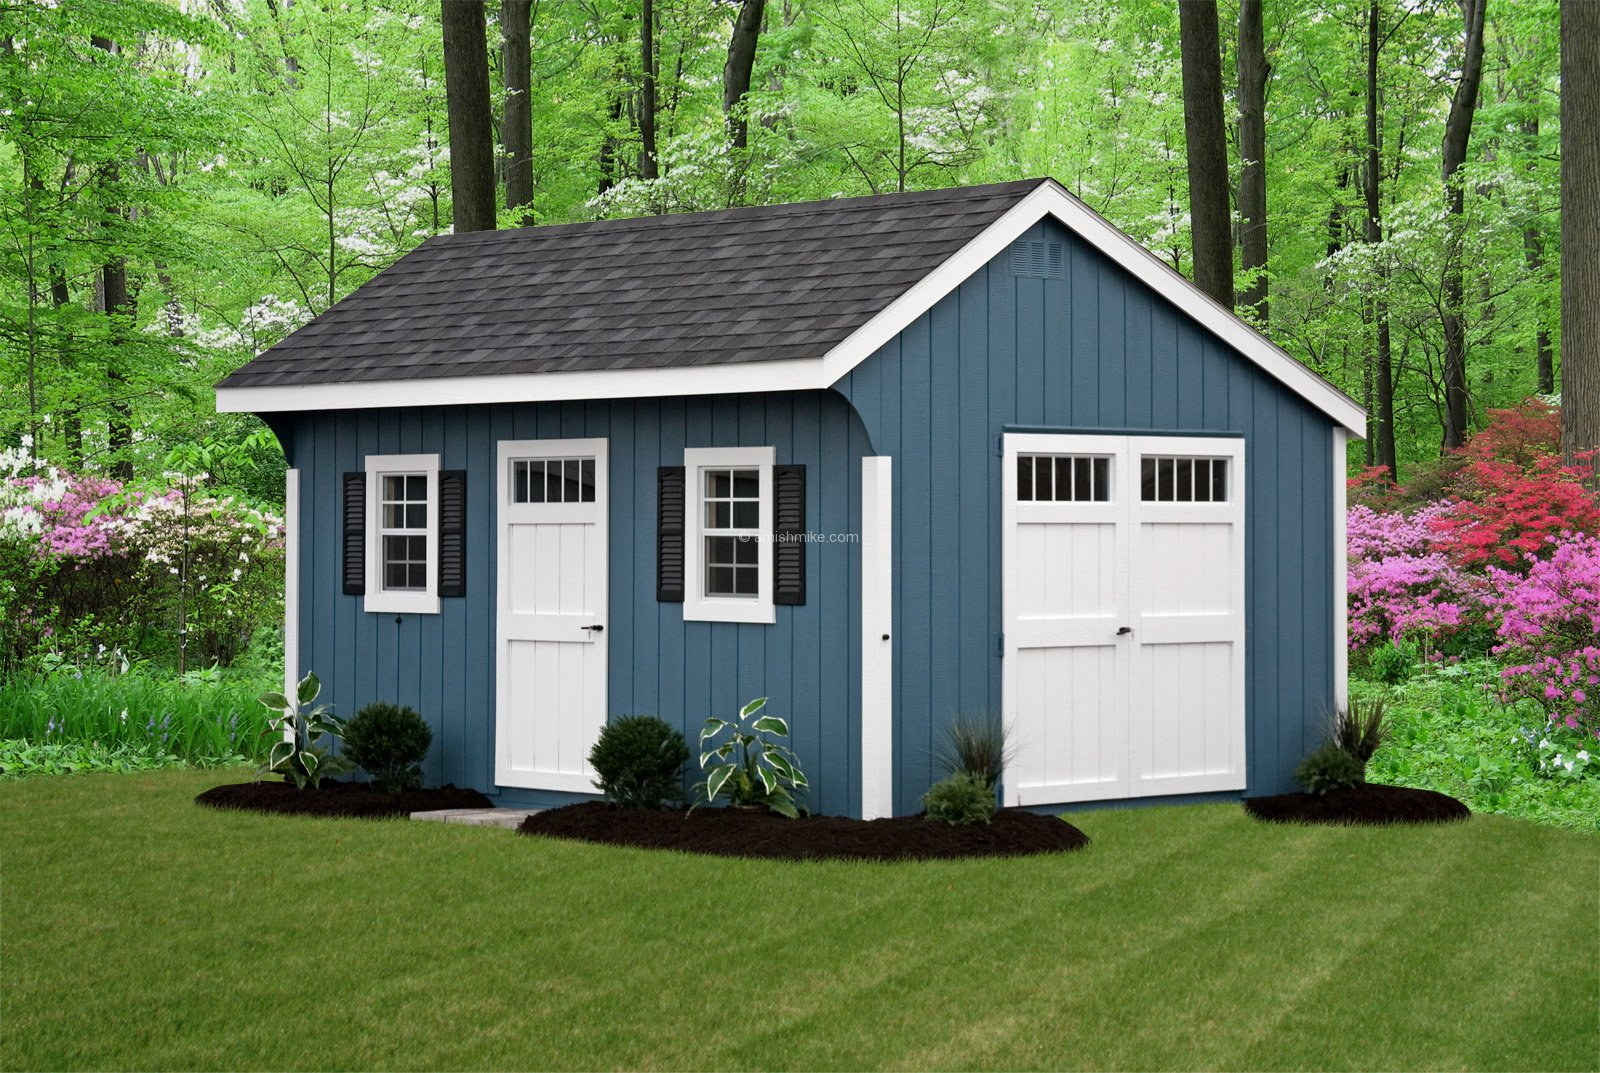 Garden Sheds Nj new england quaker sheds - amish mike- amish sheds, amish barns